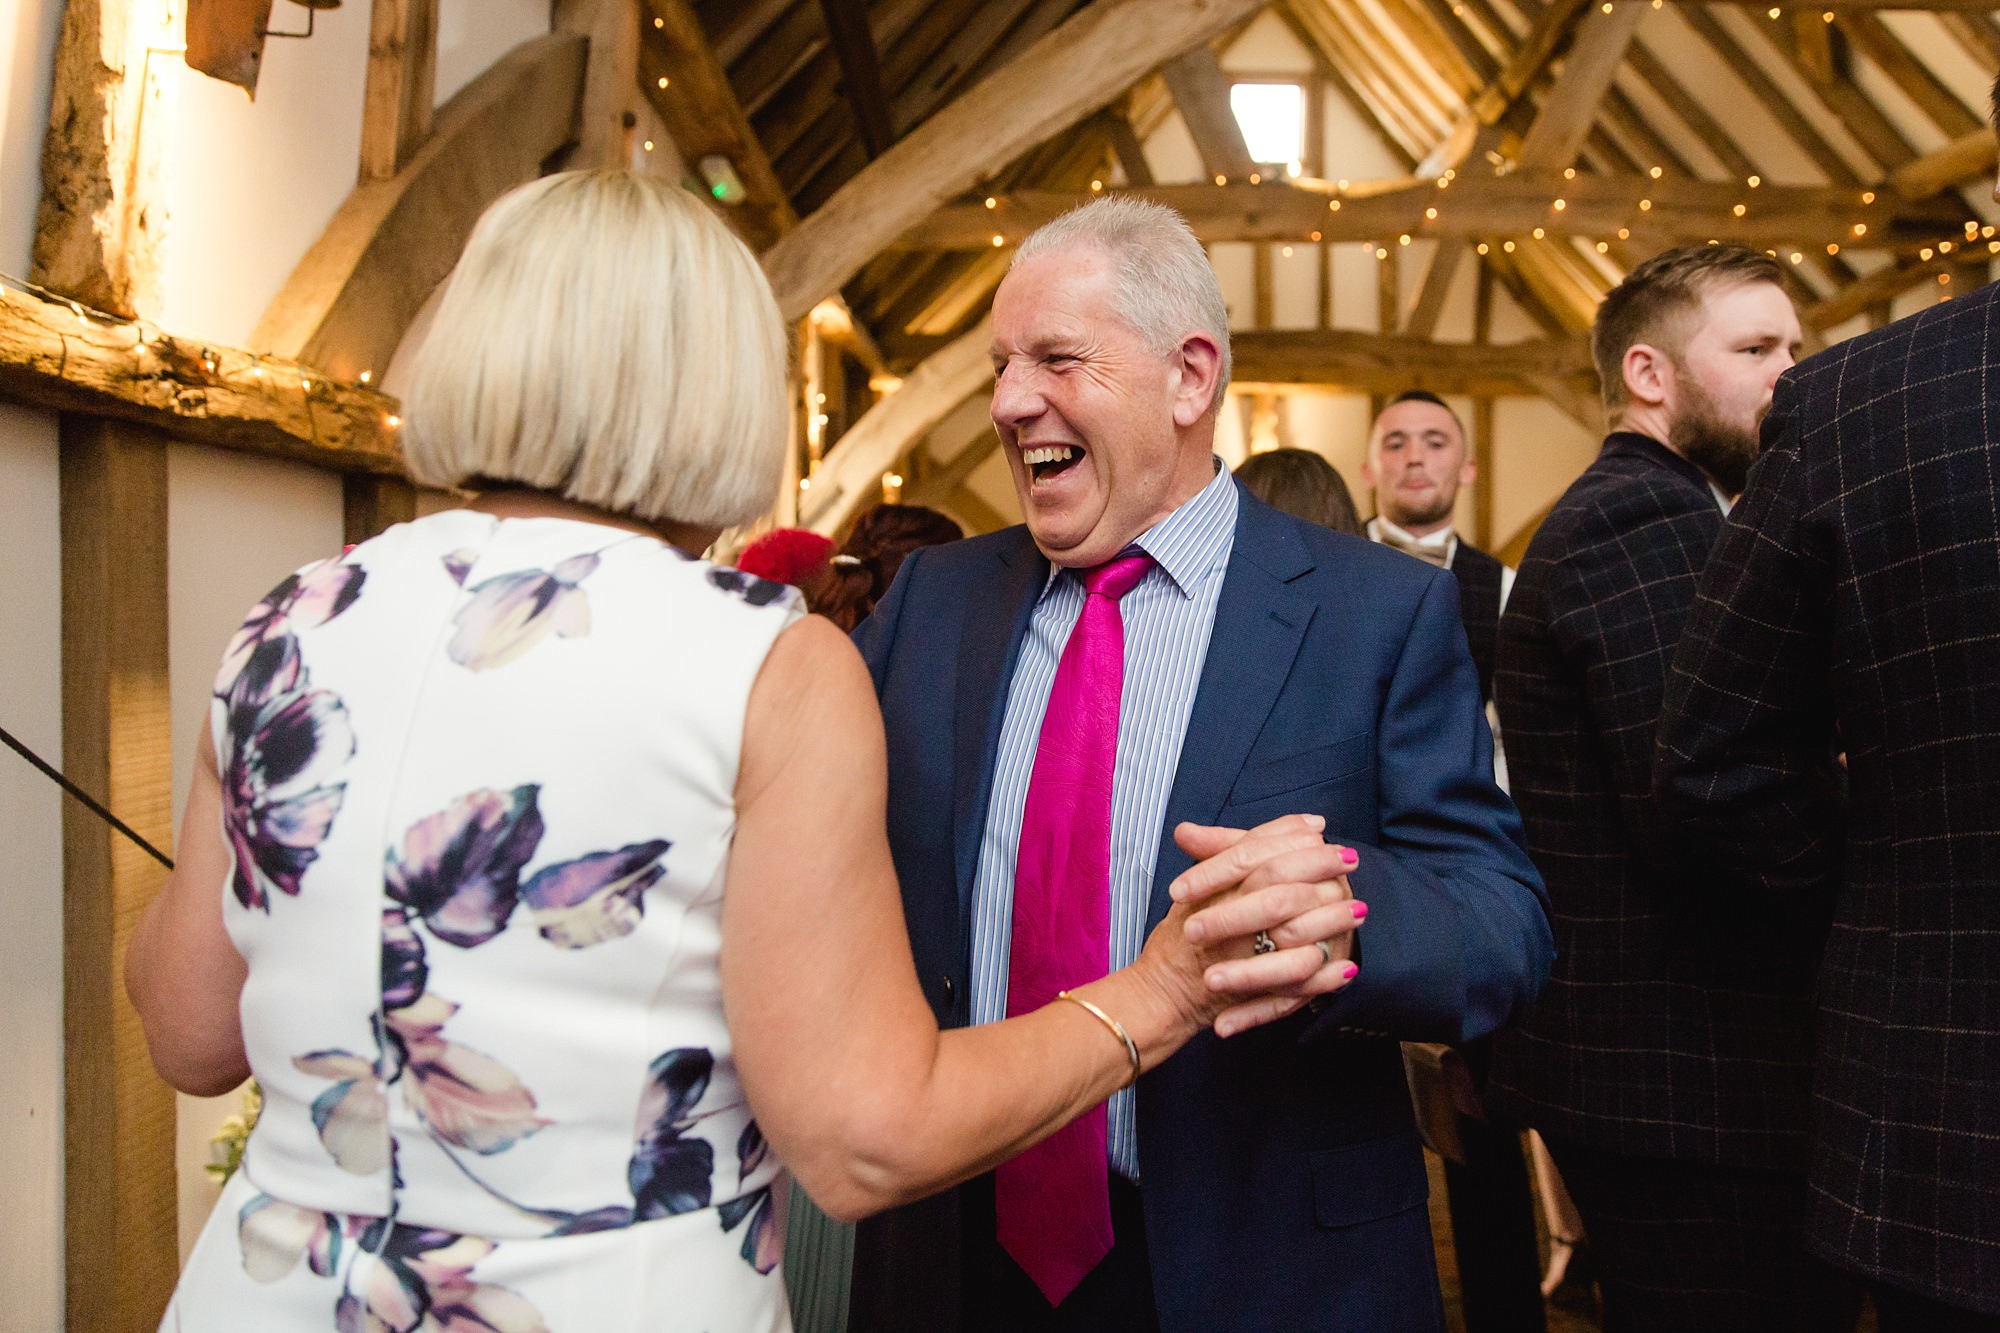 guests laugh and dance together at humanist wedding old greens barn